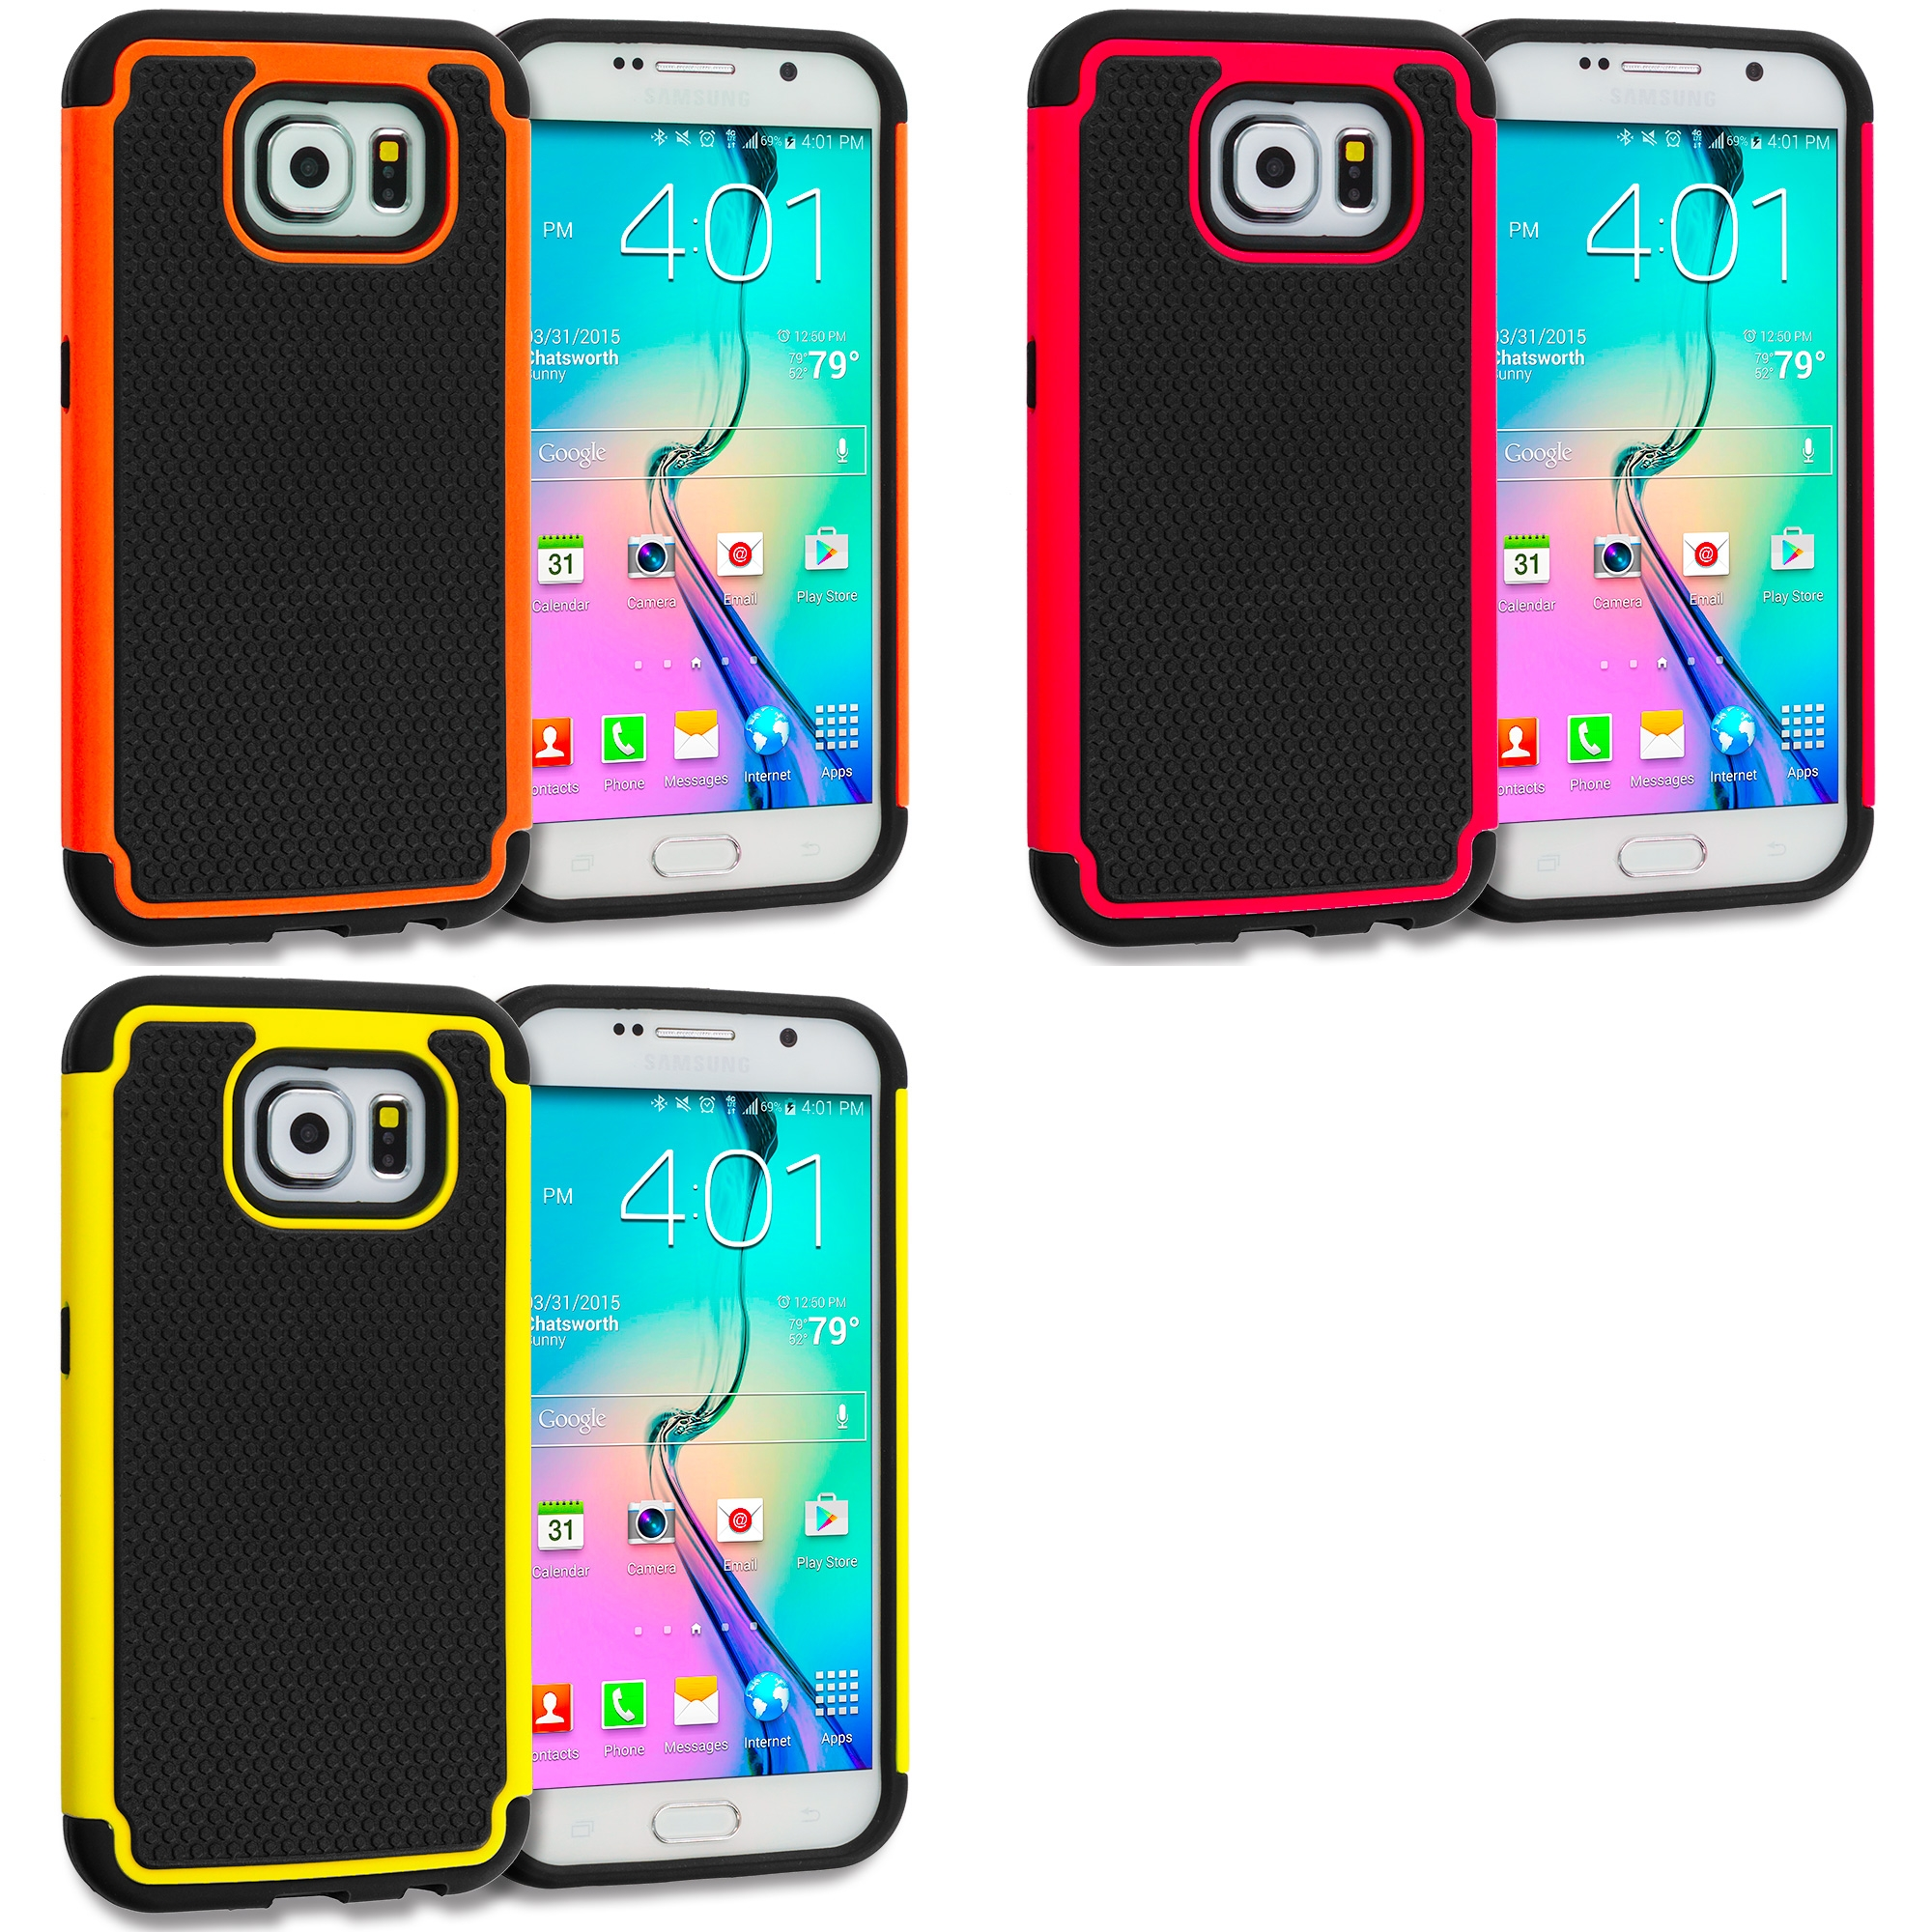 Samsung Galaxy S6 Combo Pack : Black / Red Hybrid Rugged Grip Shockproof Case Cover